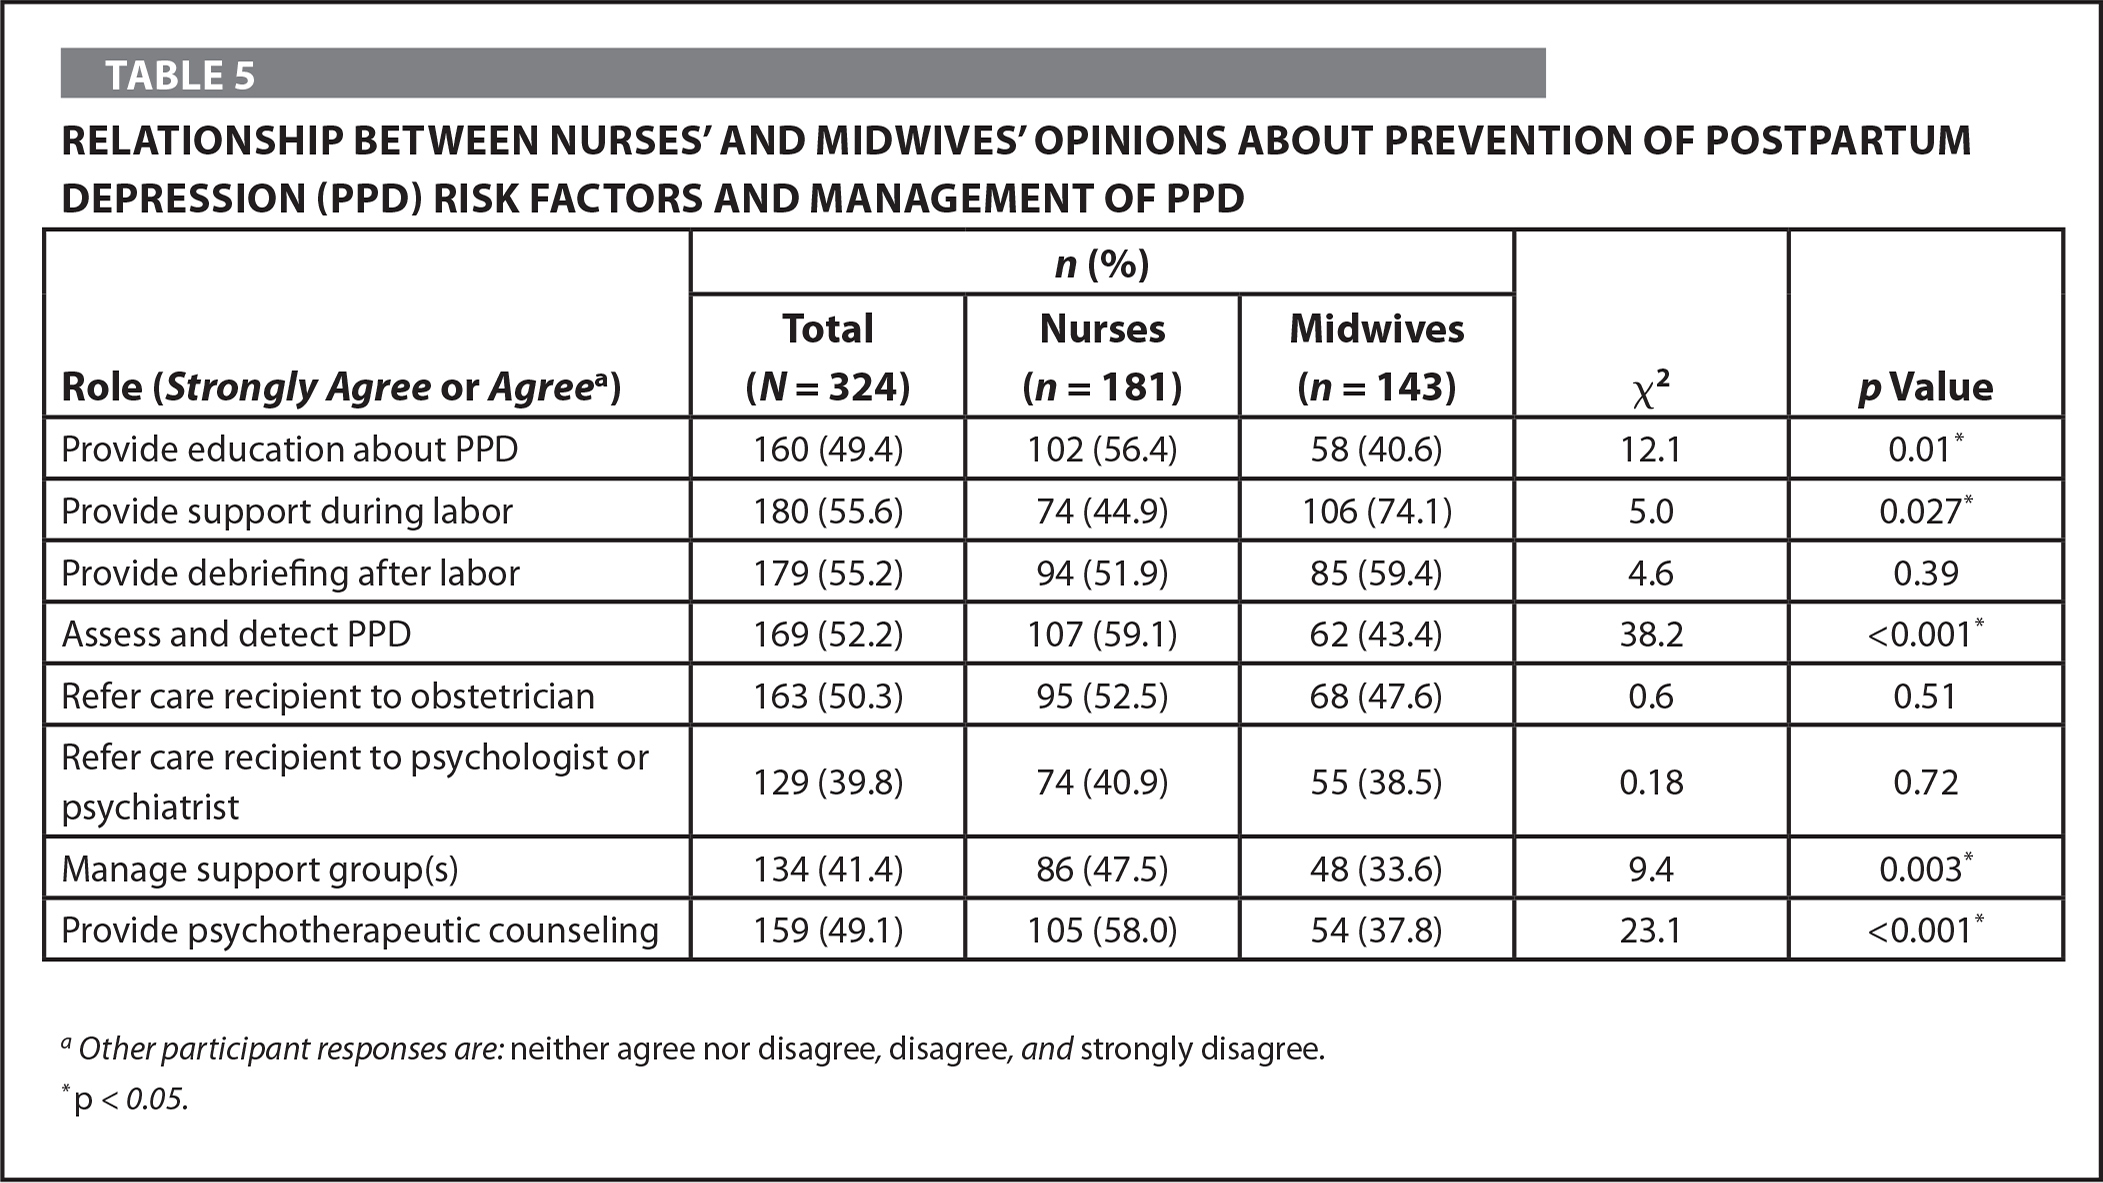 Relationship Between Nurses' and Midwives' Opinions about Prevention of Postpartum Depression (PPD) Risk Factors and Management of PPD